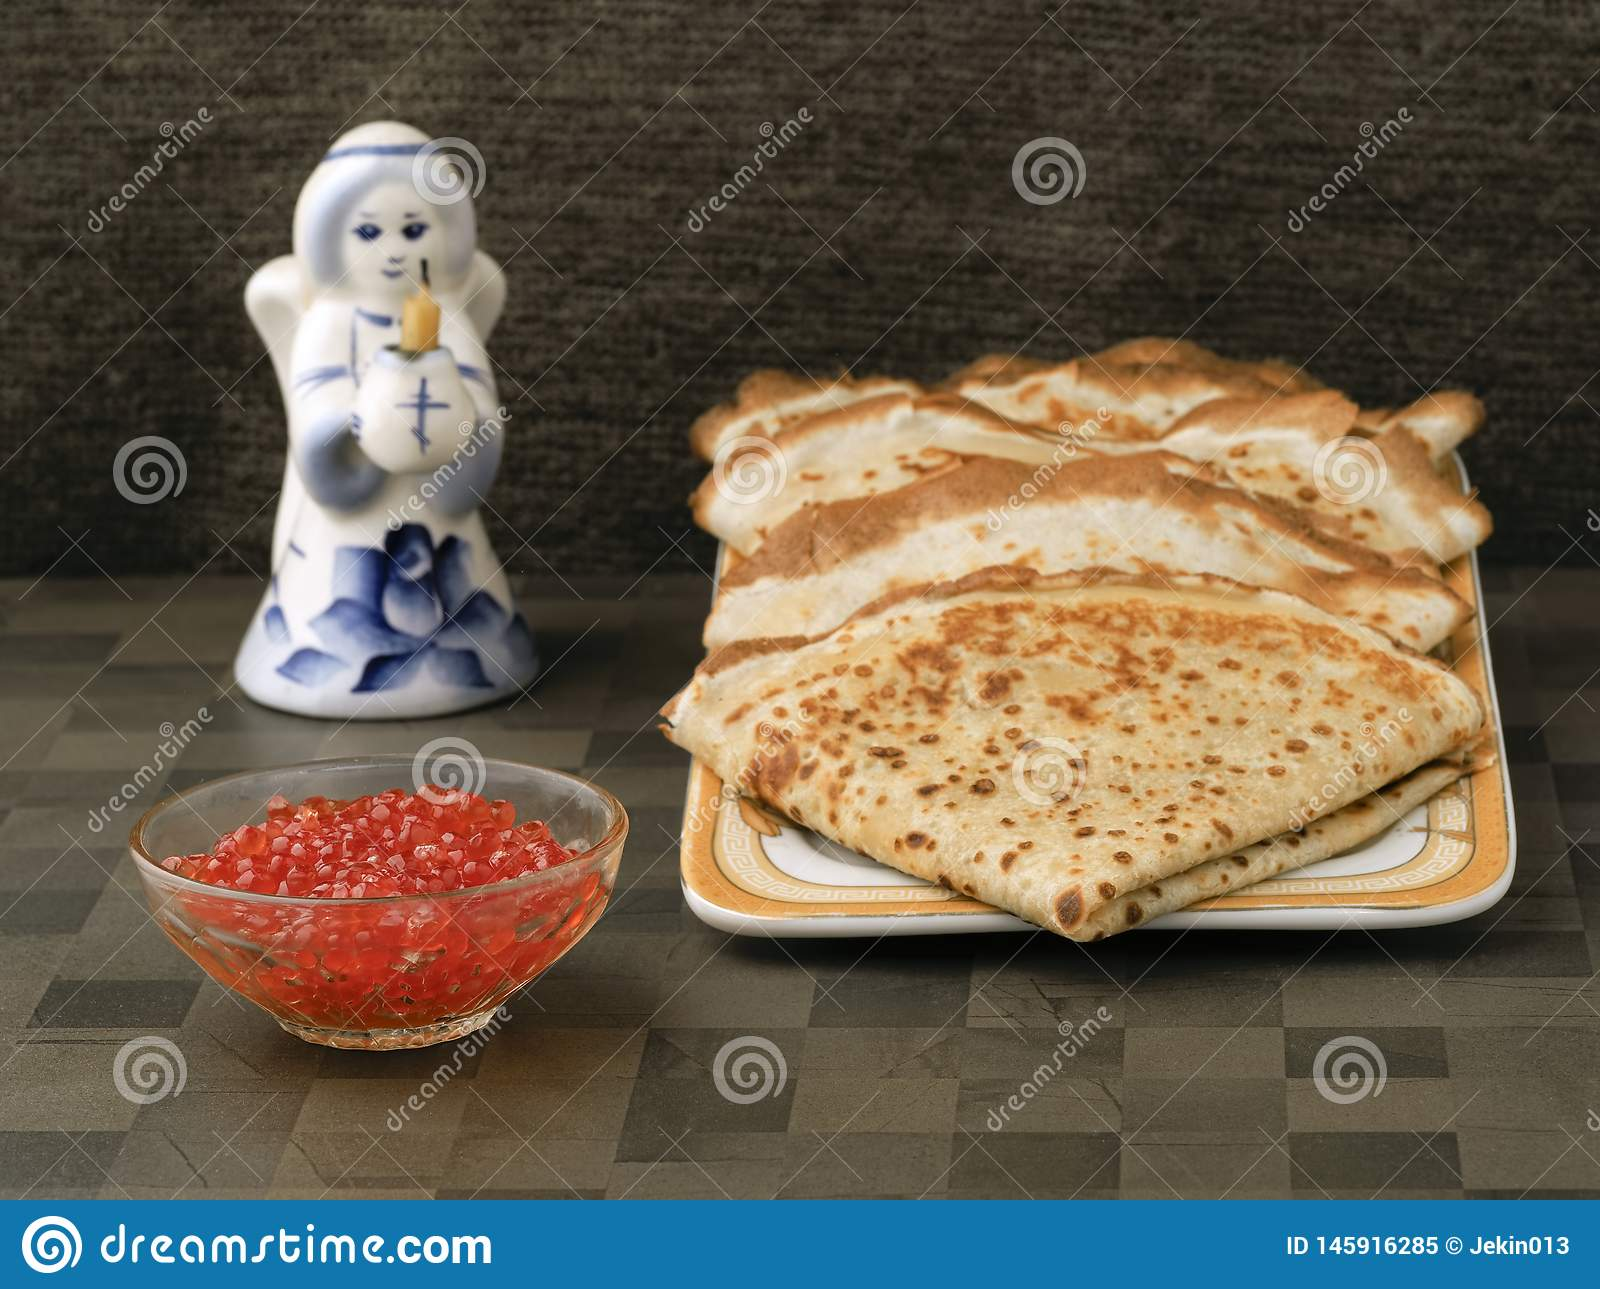 Four ruddy pancake neatly on the plate bowl with red caviar. Next figure of an angel holding a Church candle